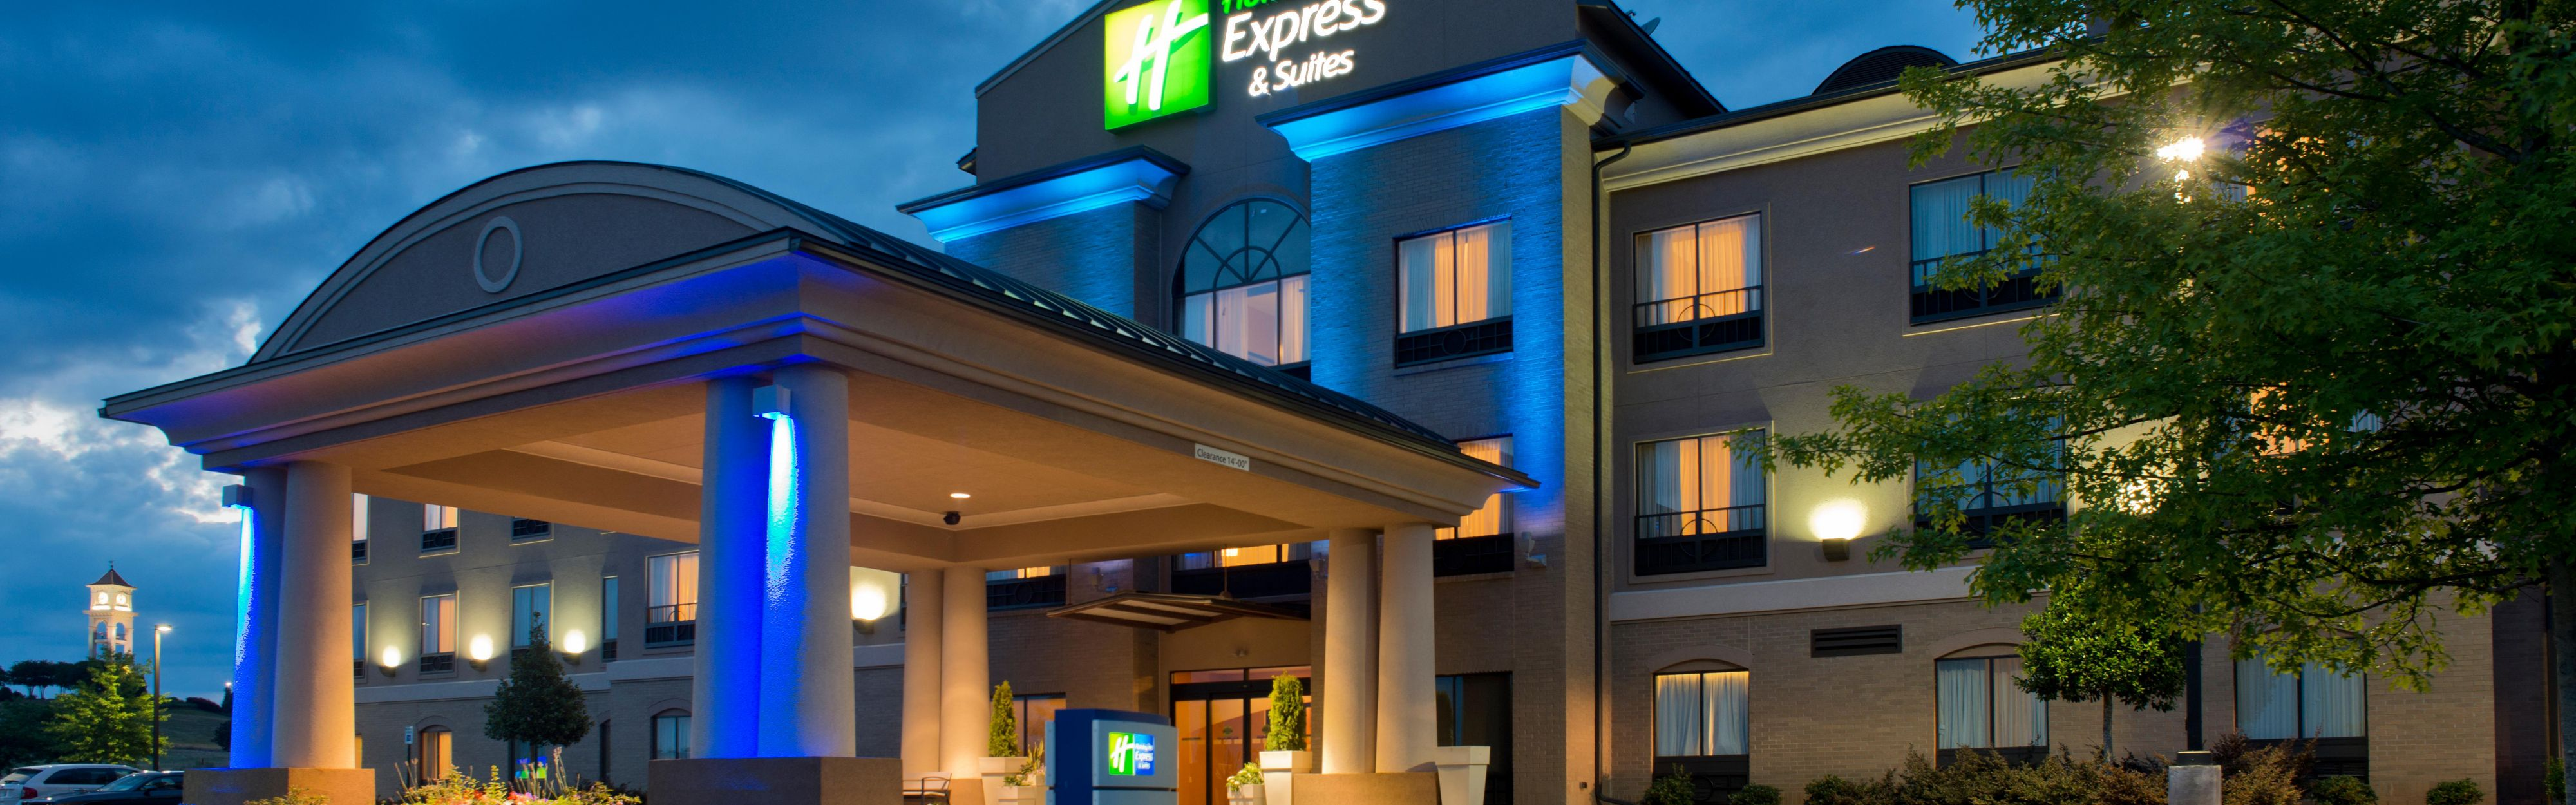 Holiday Inn Express Prattville South image 0